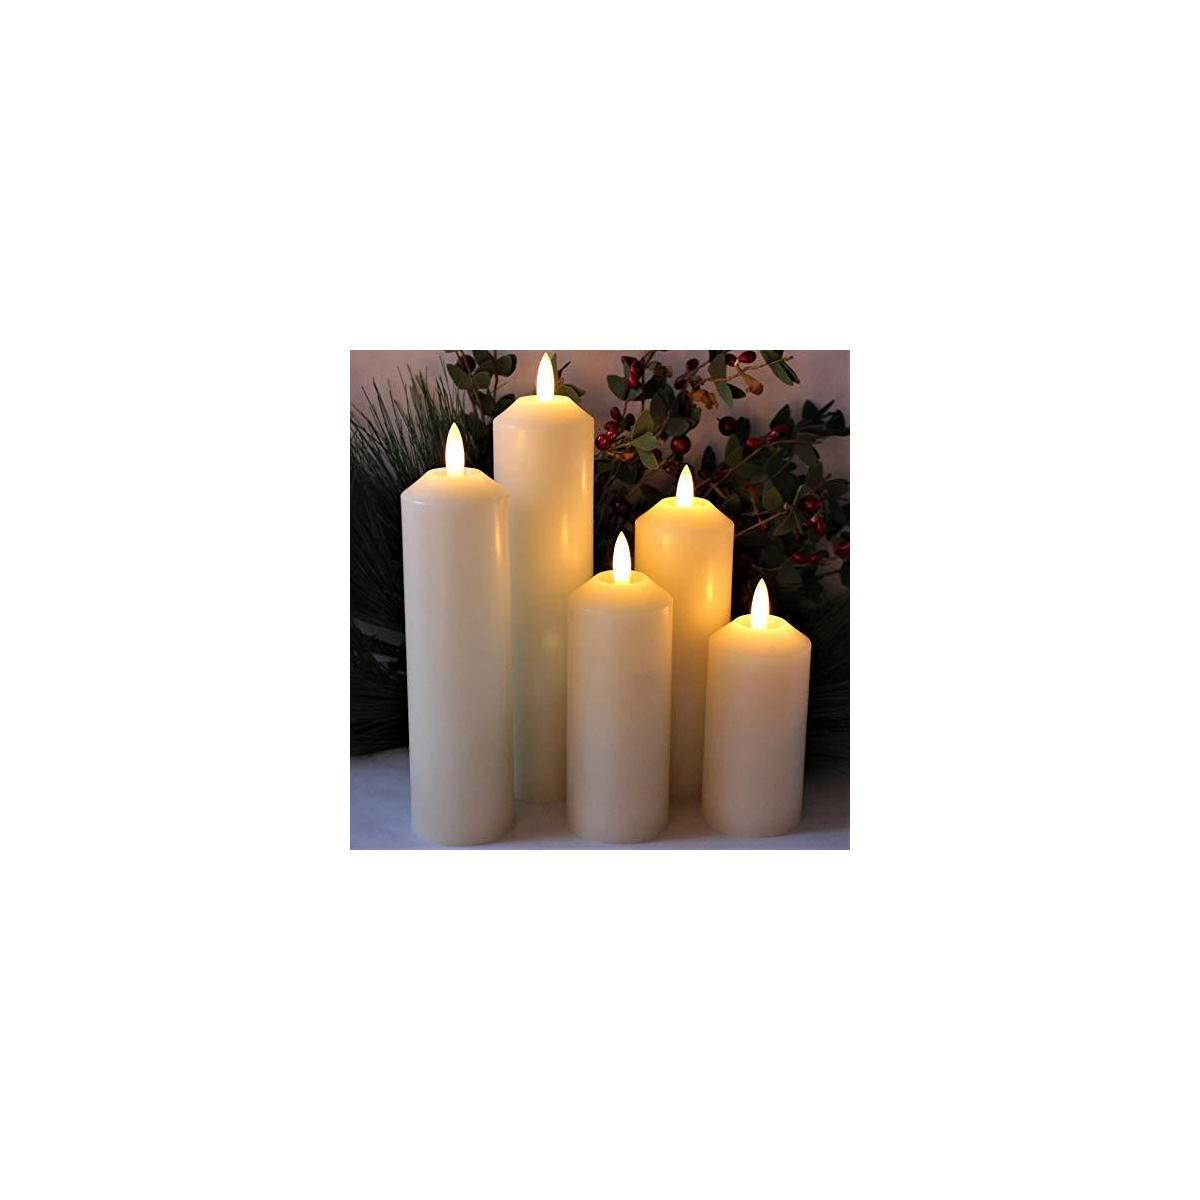 LED Lytes Timer Flameless Candles, 5 Ivory Wax Narrow Width Battery Candle Set, Realistic LED Candles Flickering 3D Flame and Wick with 6 Hour Rotating Timers